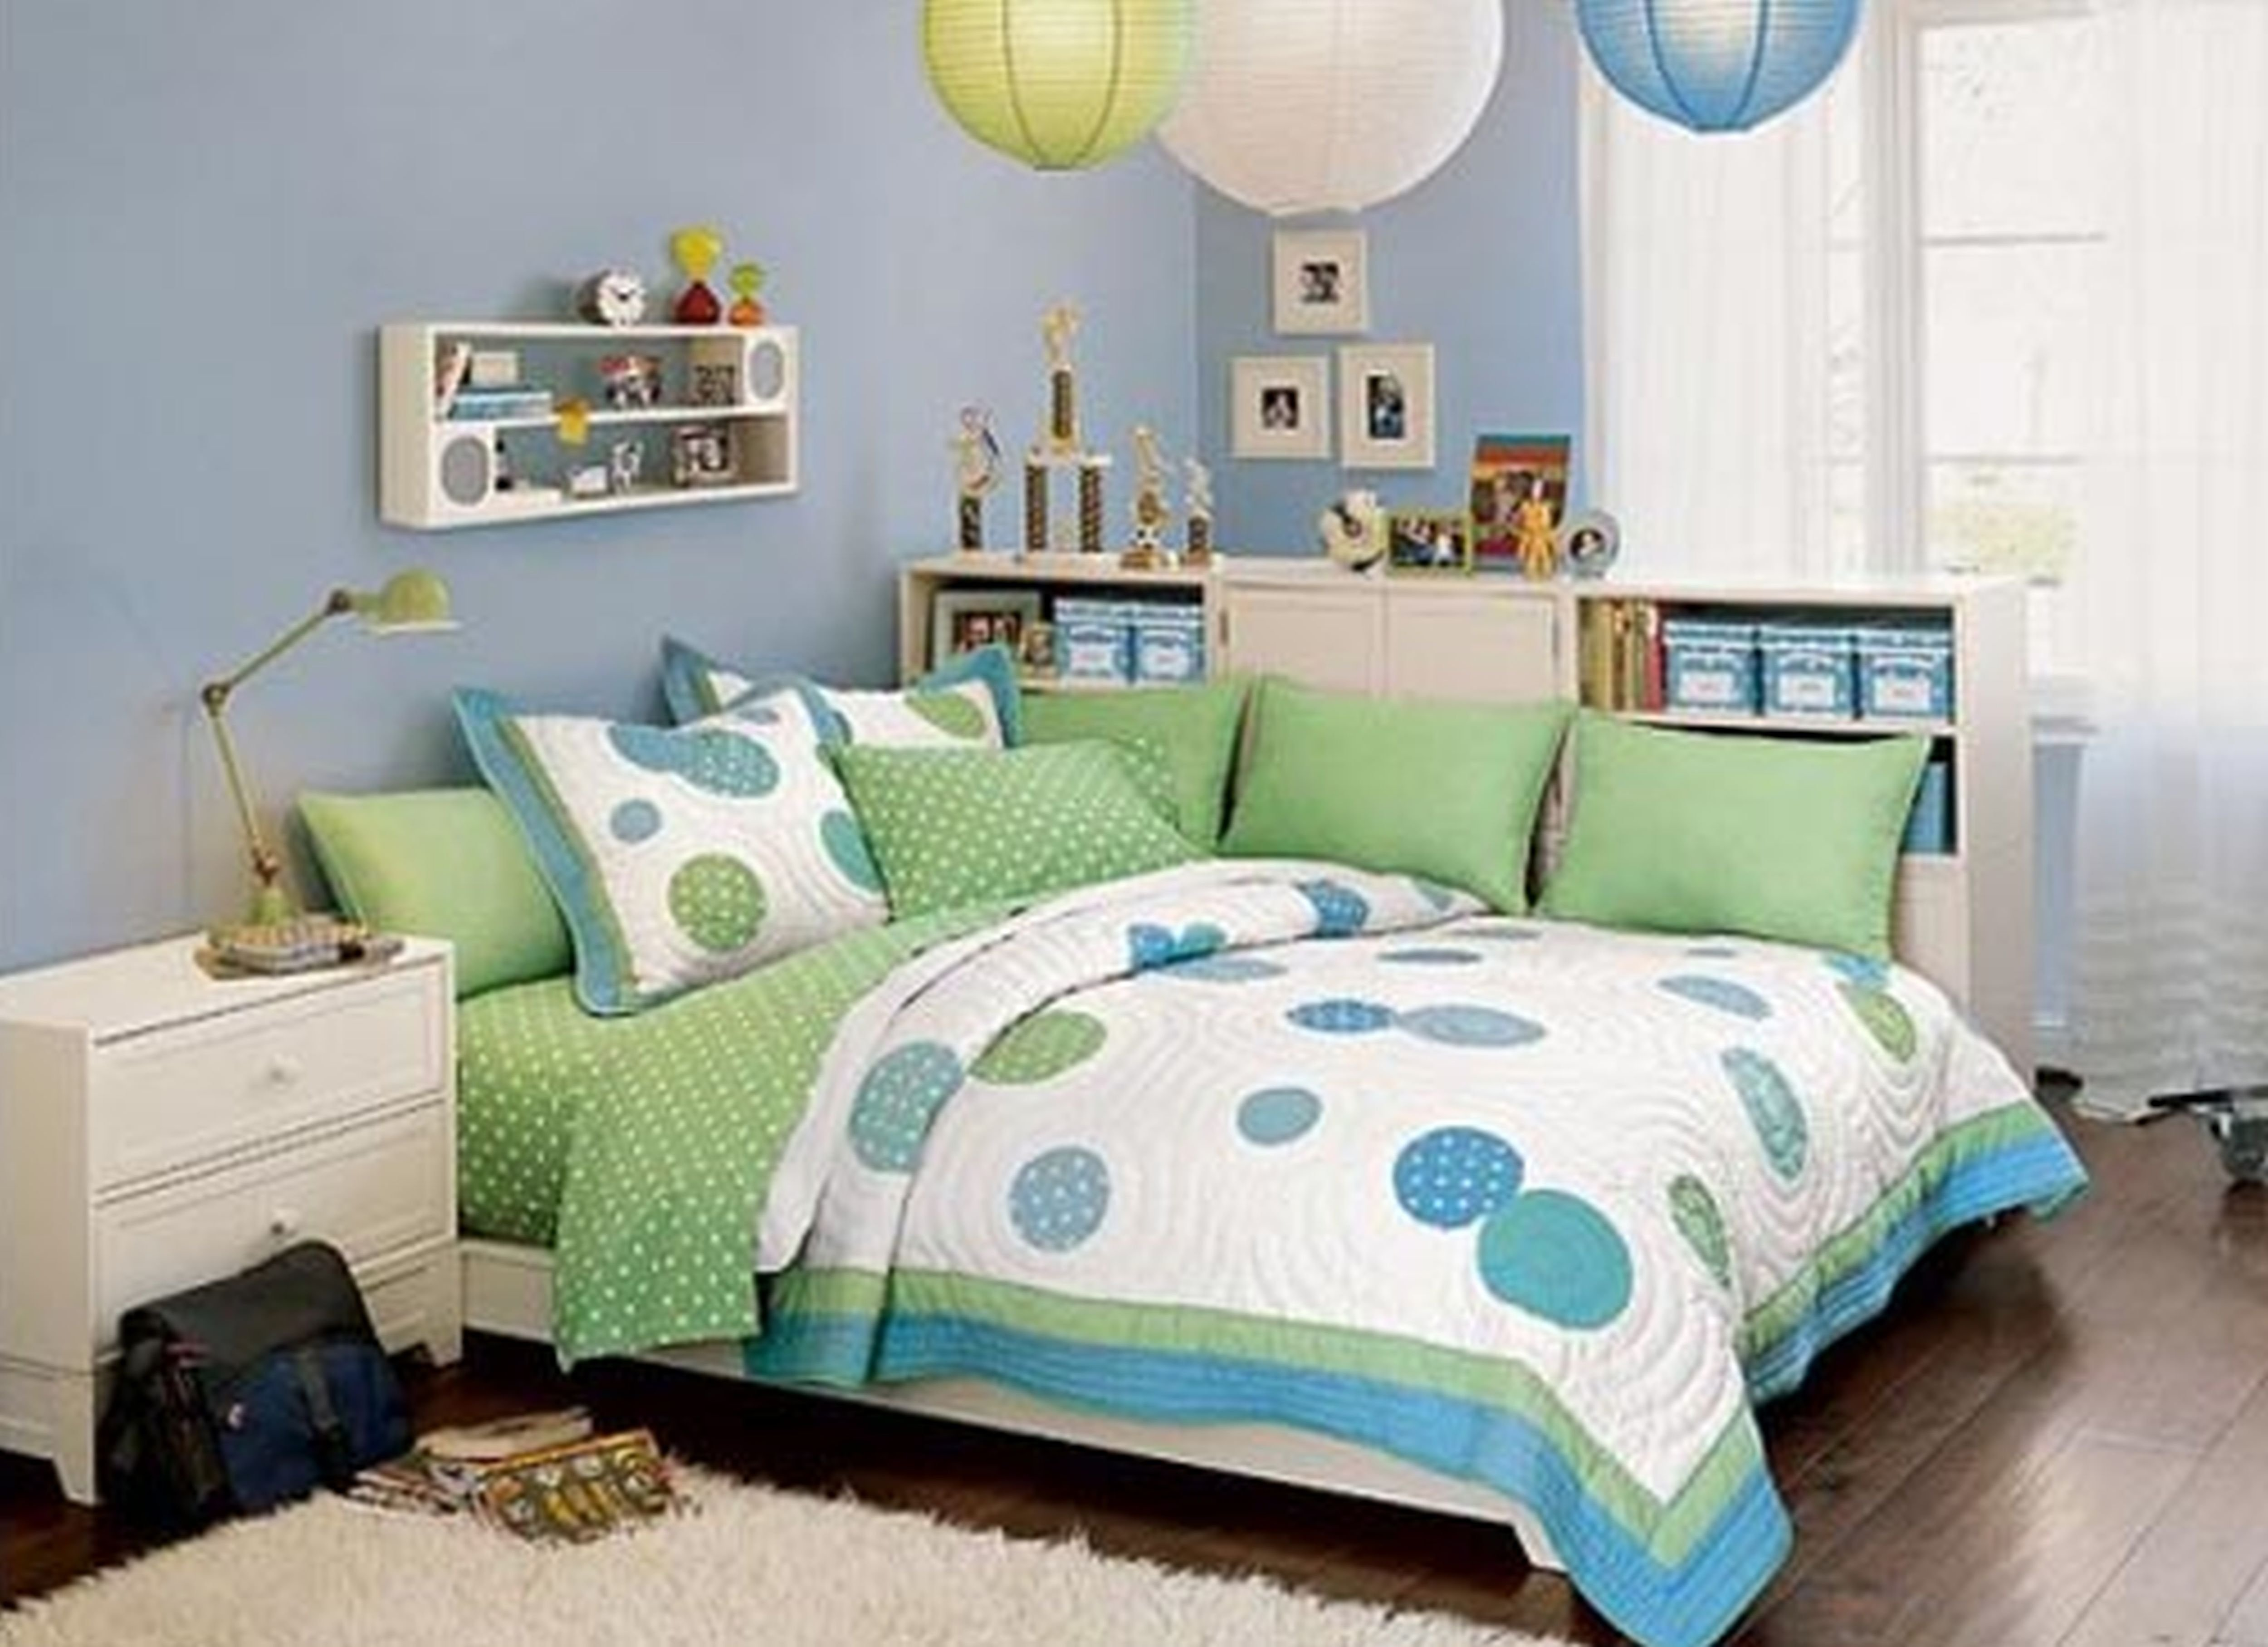 10 Attractive Blue And Green Bedroom Ideas bedroom decorating ideas blue and green awesome with bedroom 2021